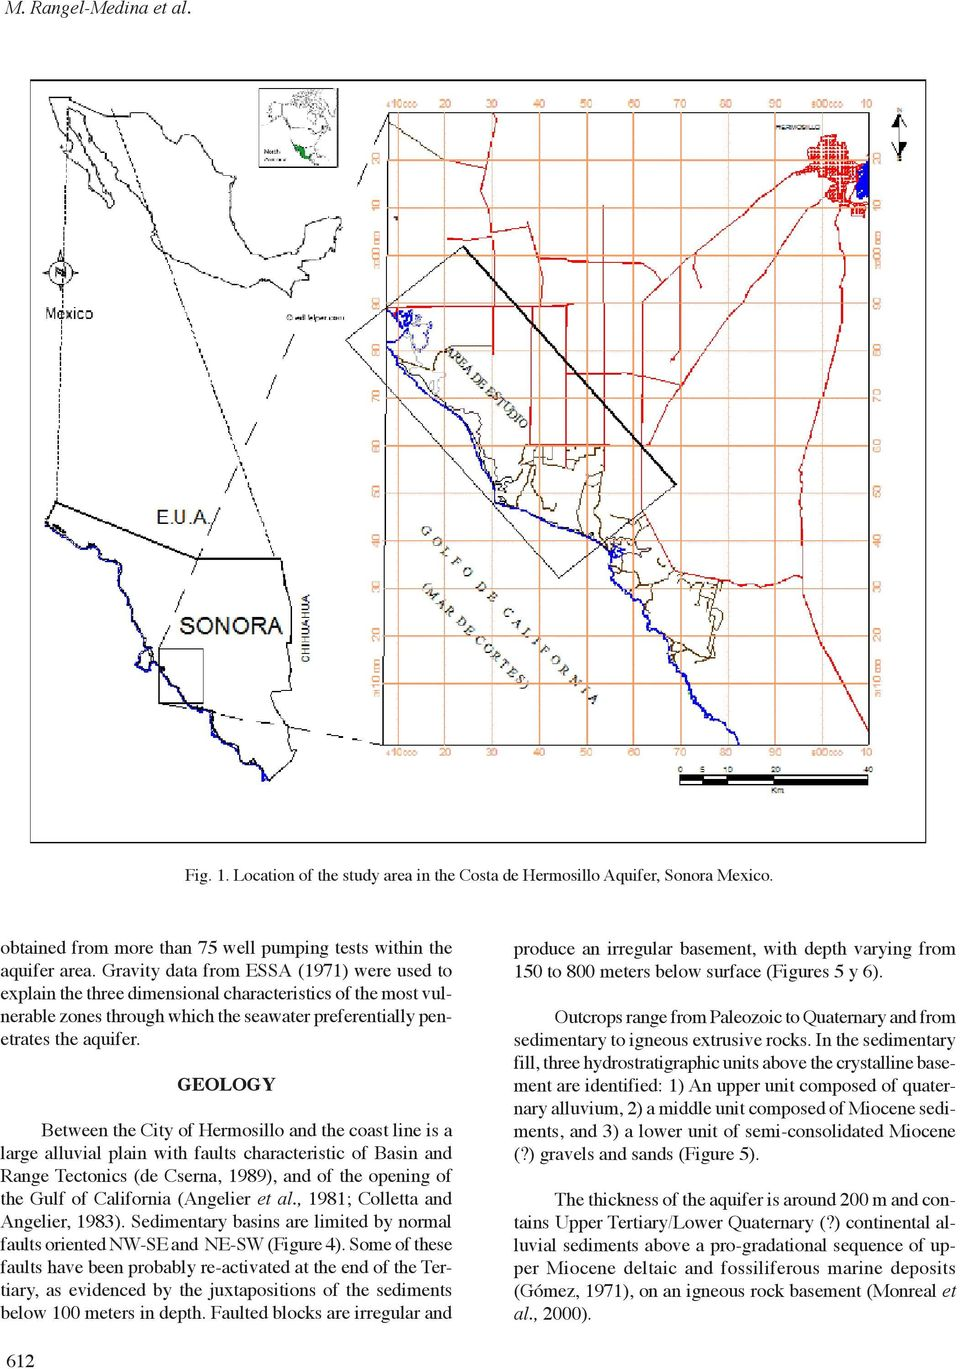 GEOLOGY Between the City of Hermosillo and the coast line is a large alluvial plain with faults characteristic of Basin and Range Tectonics (de Cserna, 1989), and of the opening of the Gulf of